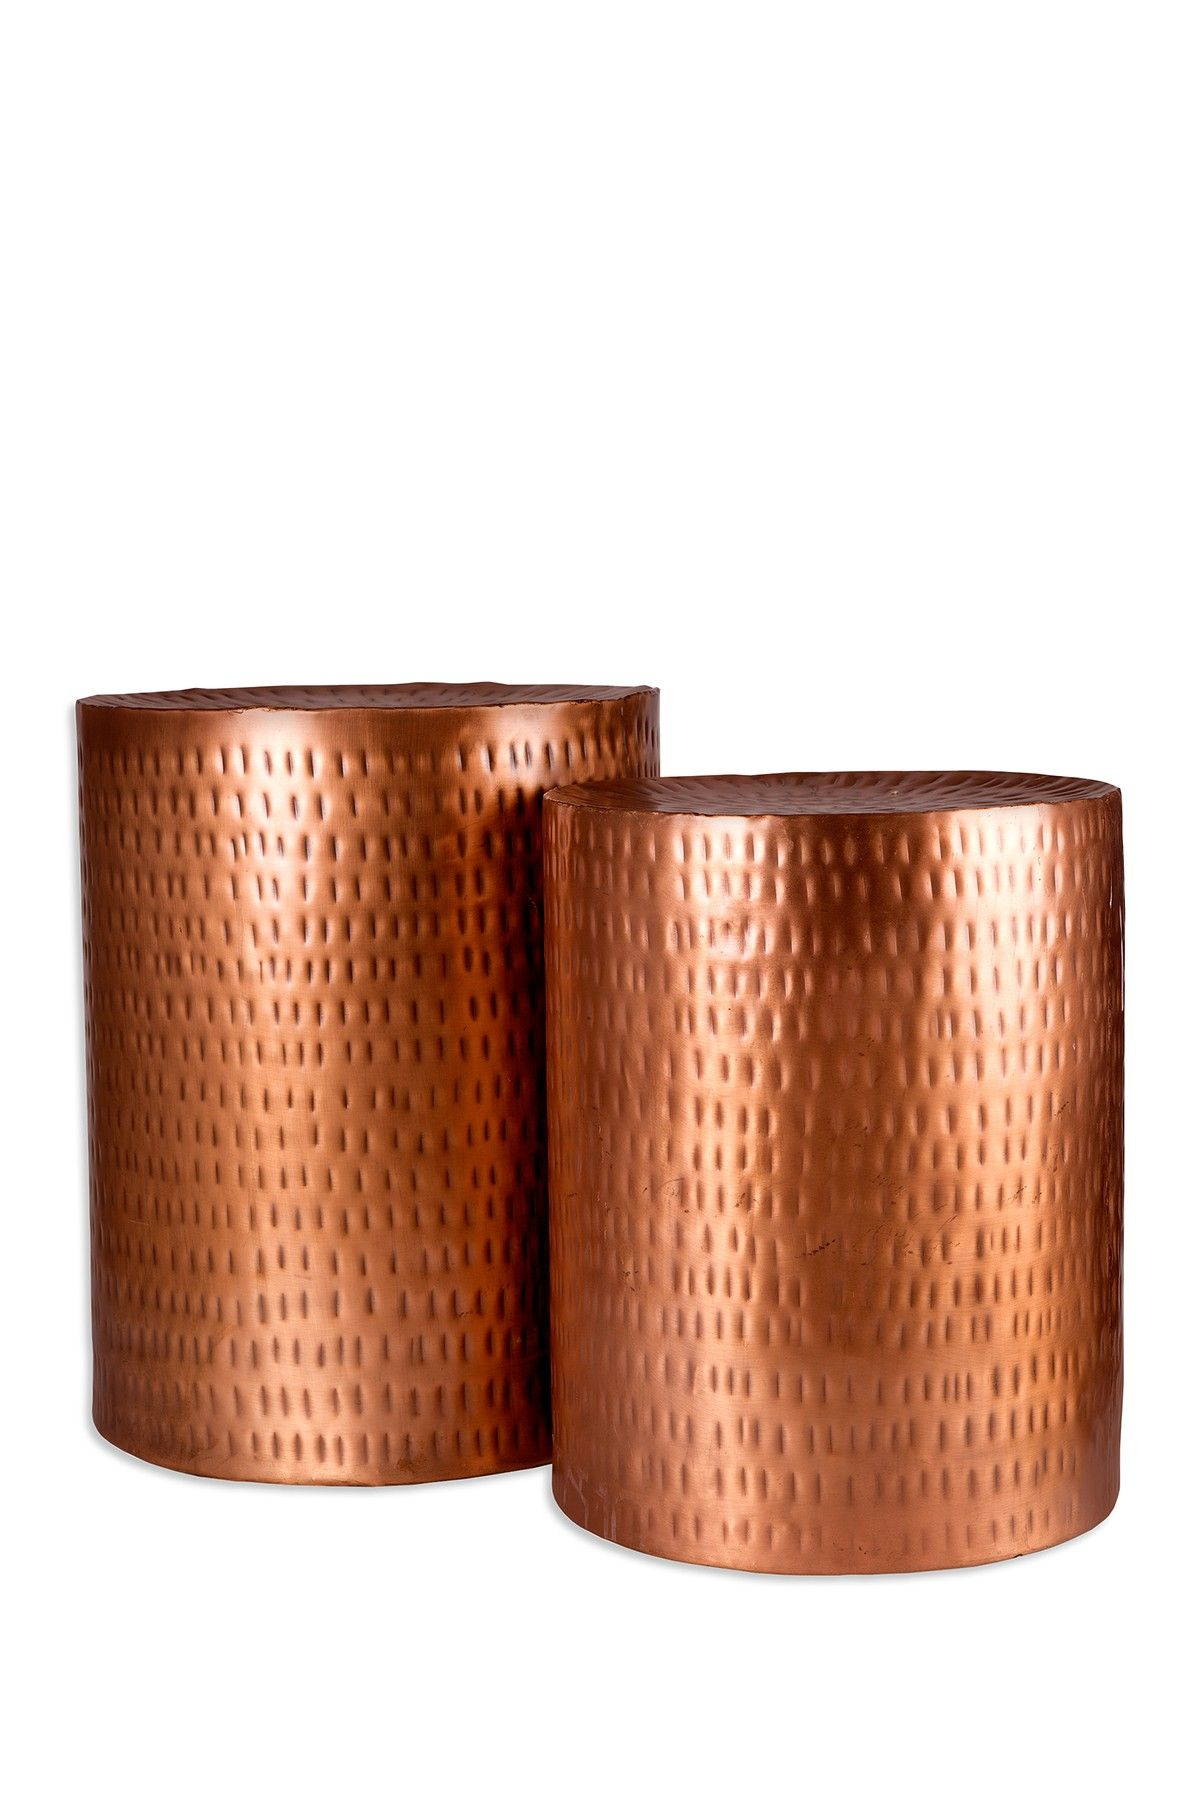 Home Essentials And Beyond Hammered Copper Garden Stool   Set Of 2